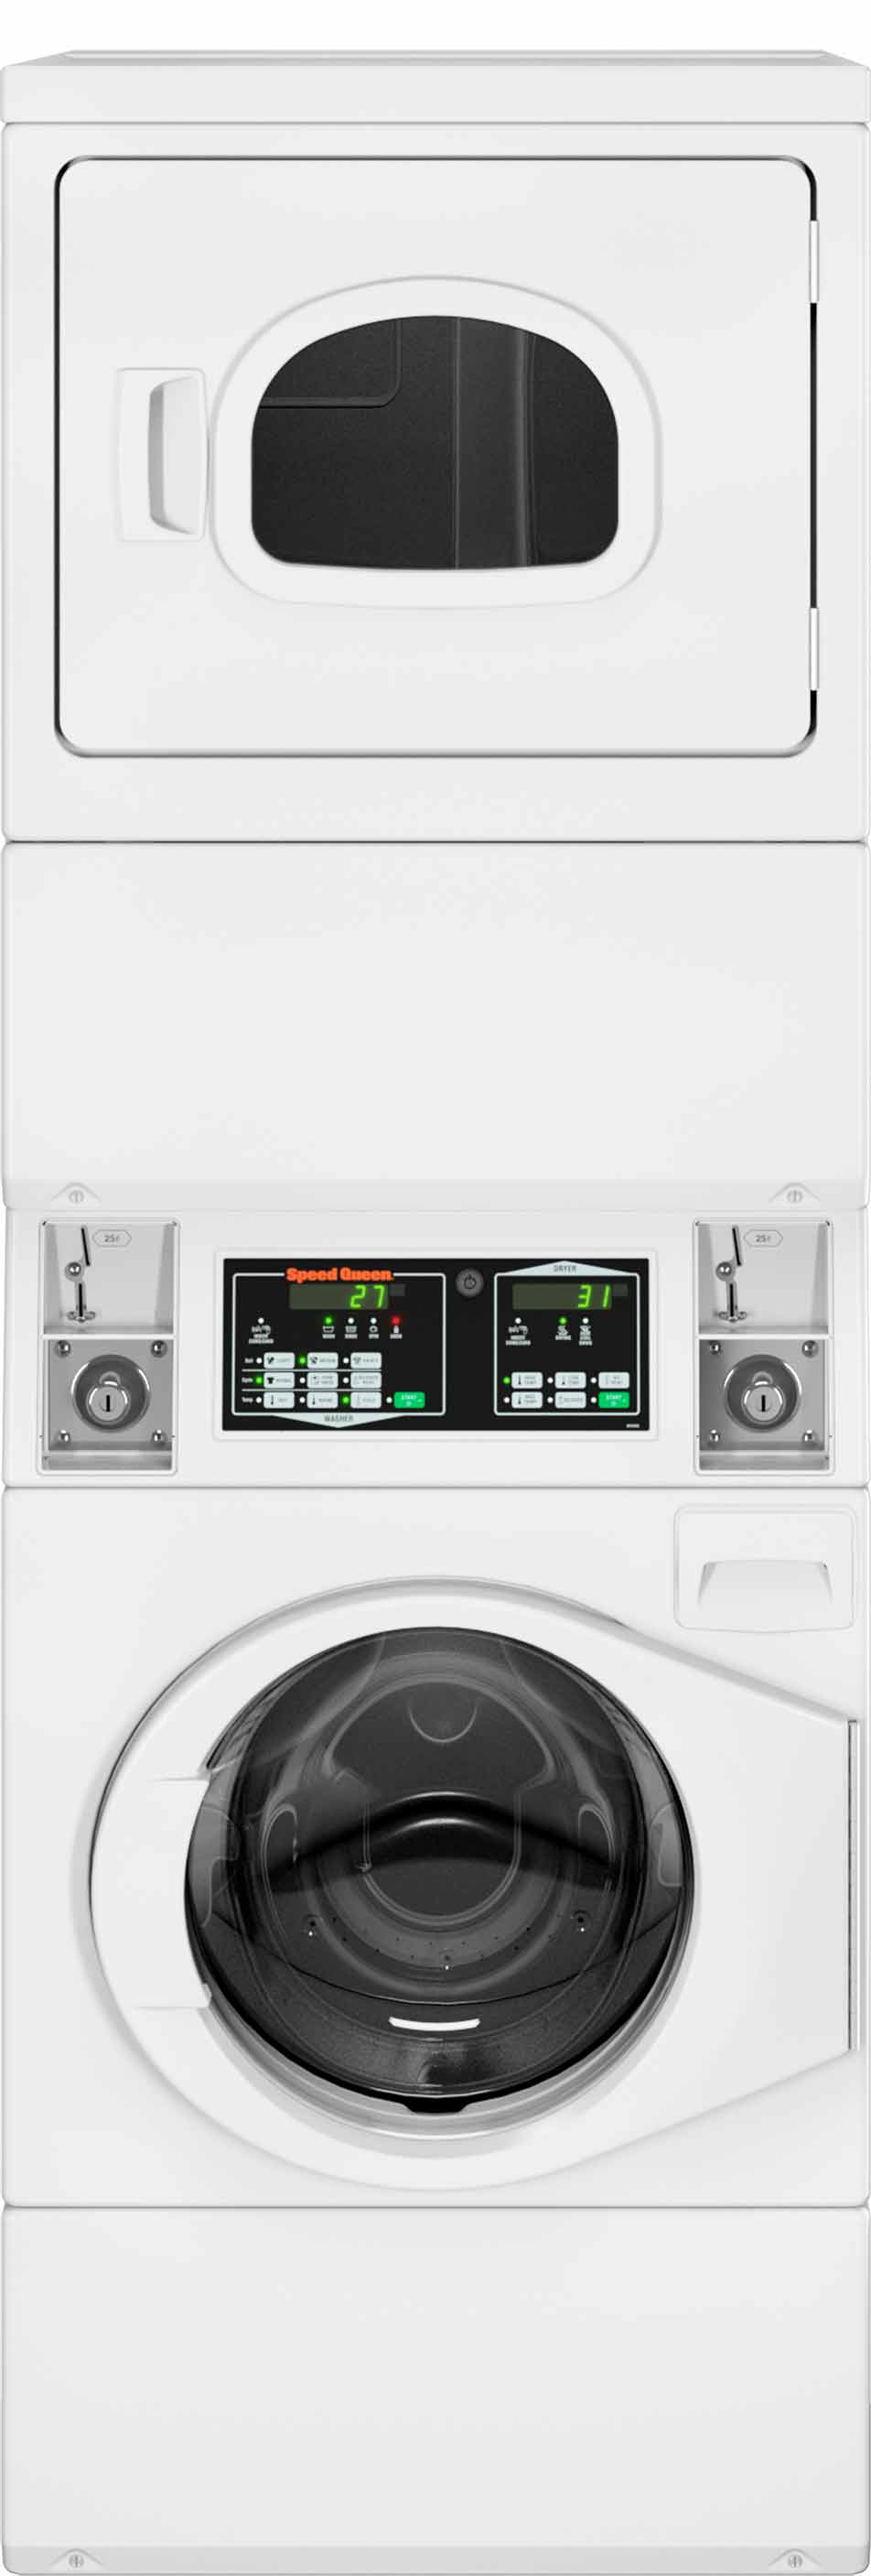 Stack Washer And Dryer Units From Oem Laundry Parts